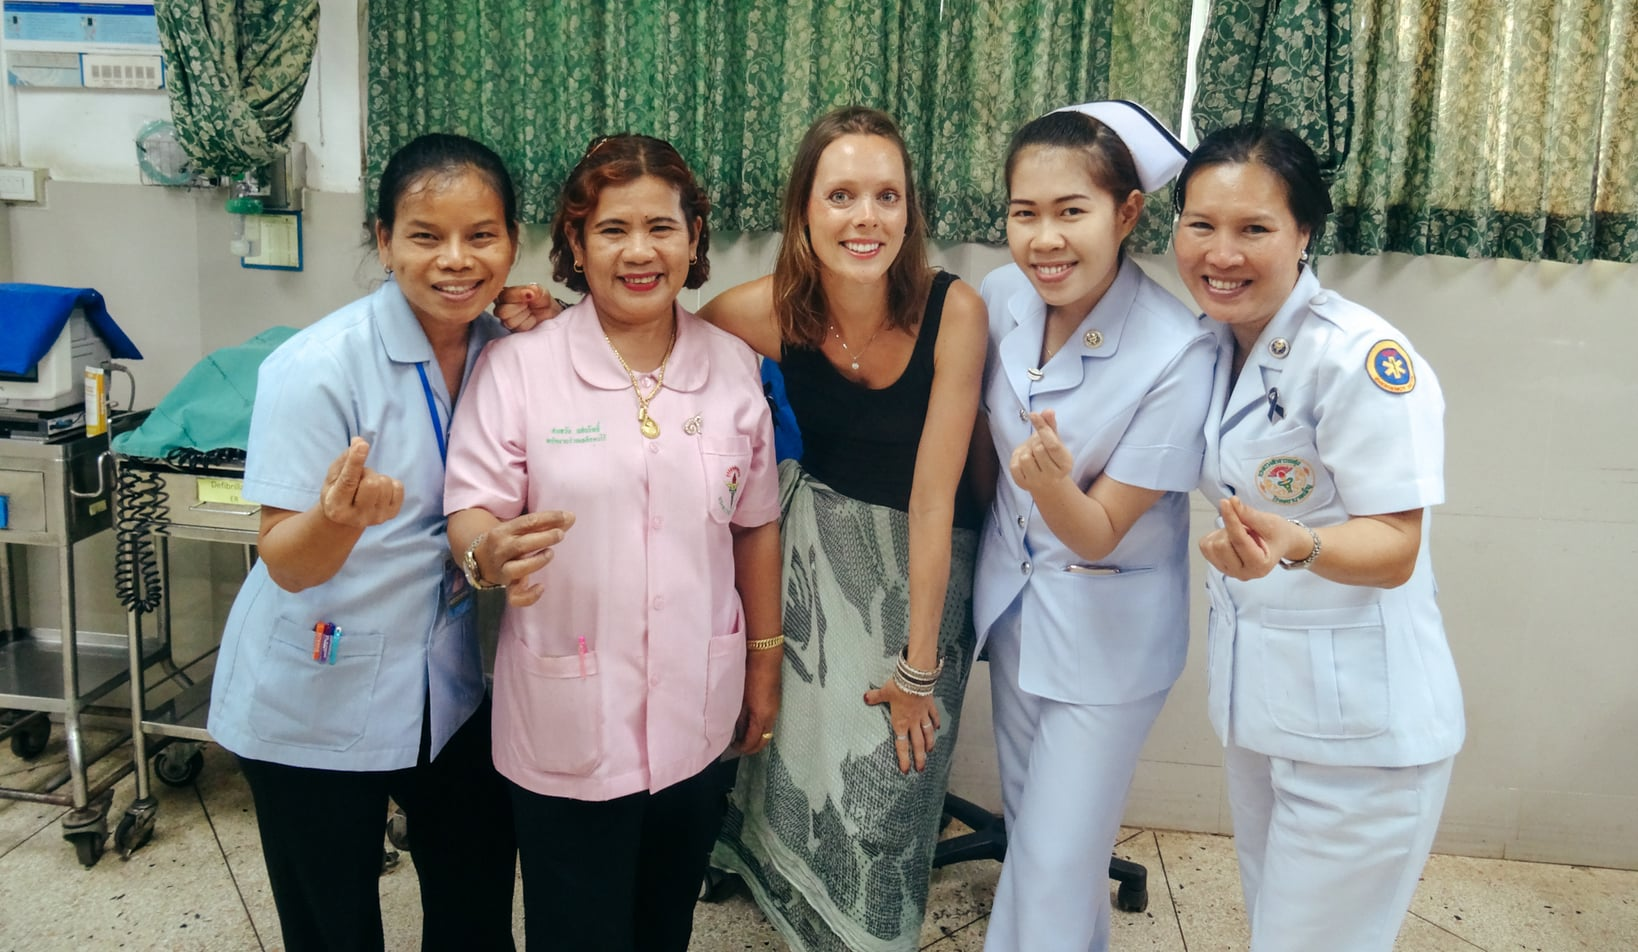 Travel the world as a registered nurse